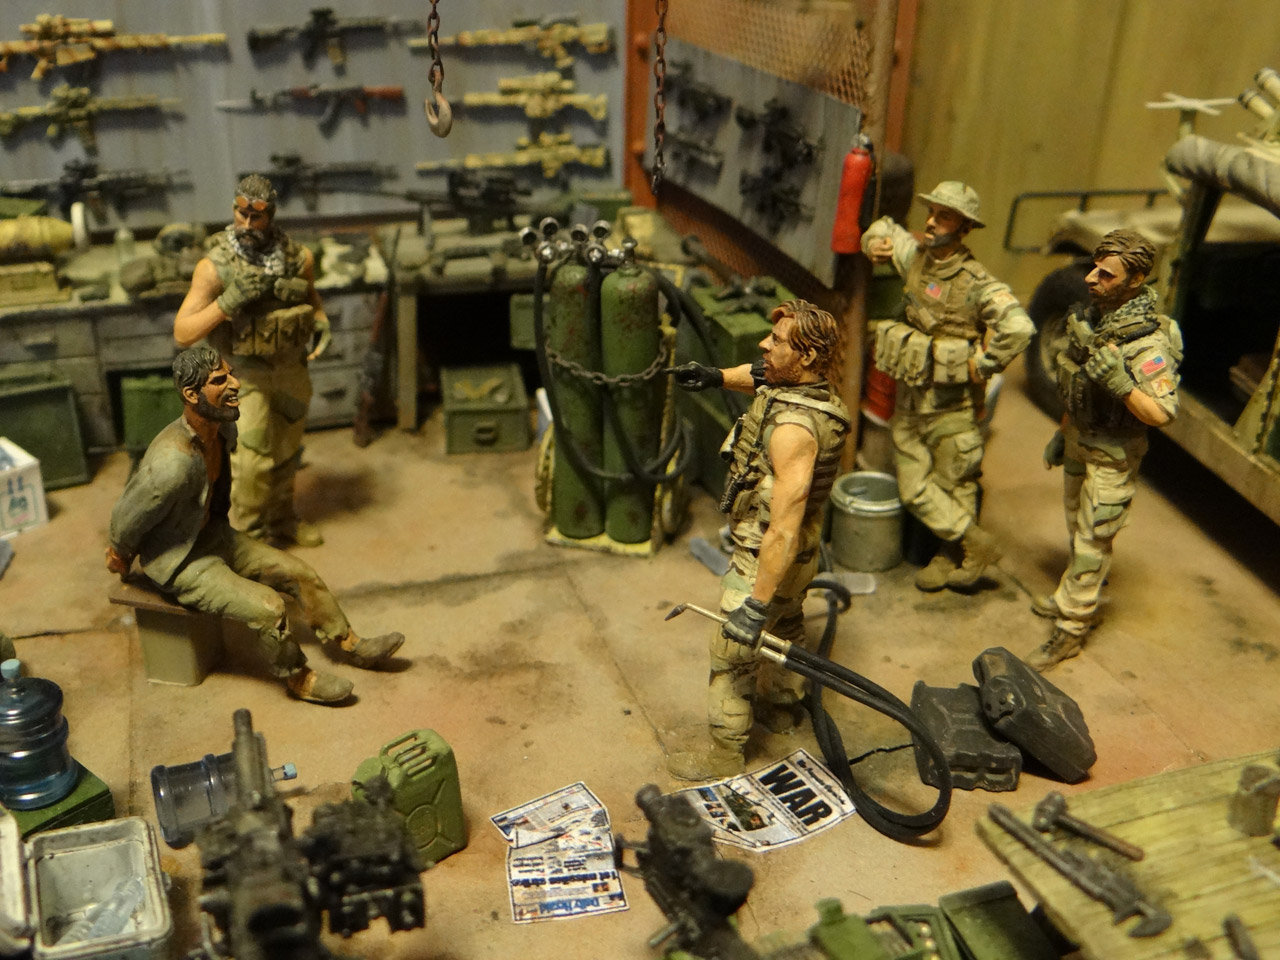 Dioramas and Vignettes: Enforcement to democracy, photo #5